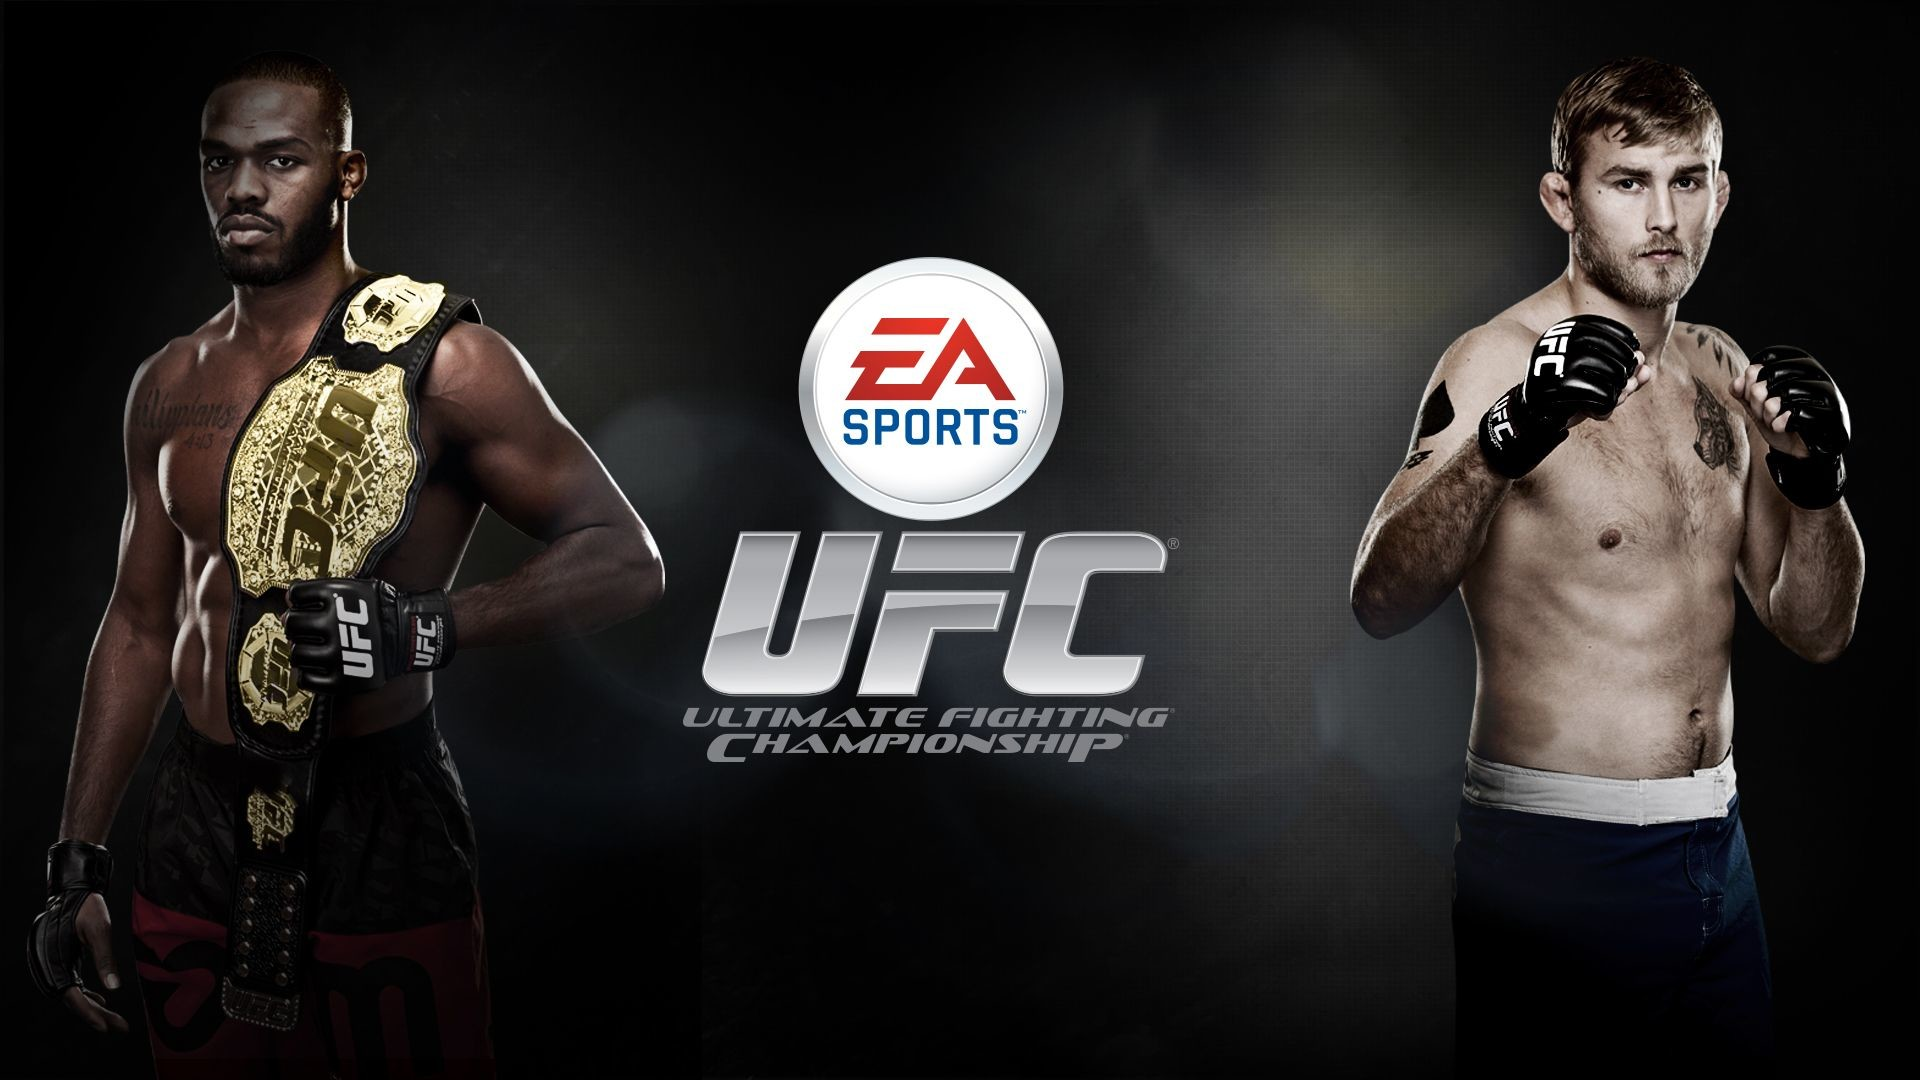 Res: 1920x1080, EA Sports UFC Computer Wallpapers, Desktop Backgrounds |  .